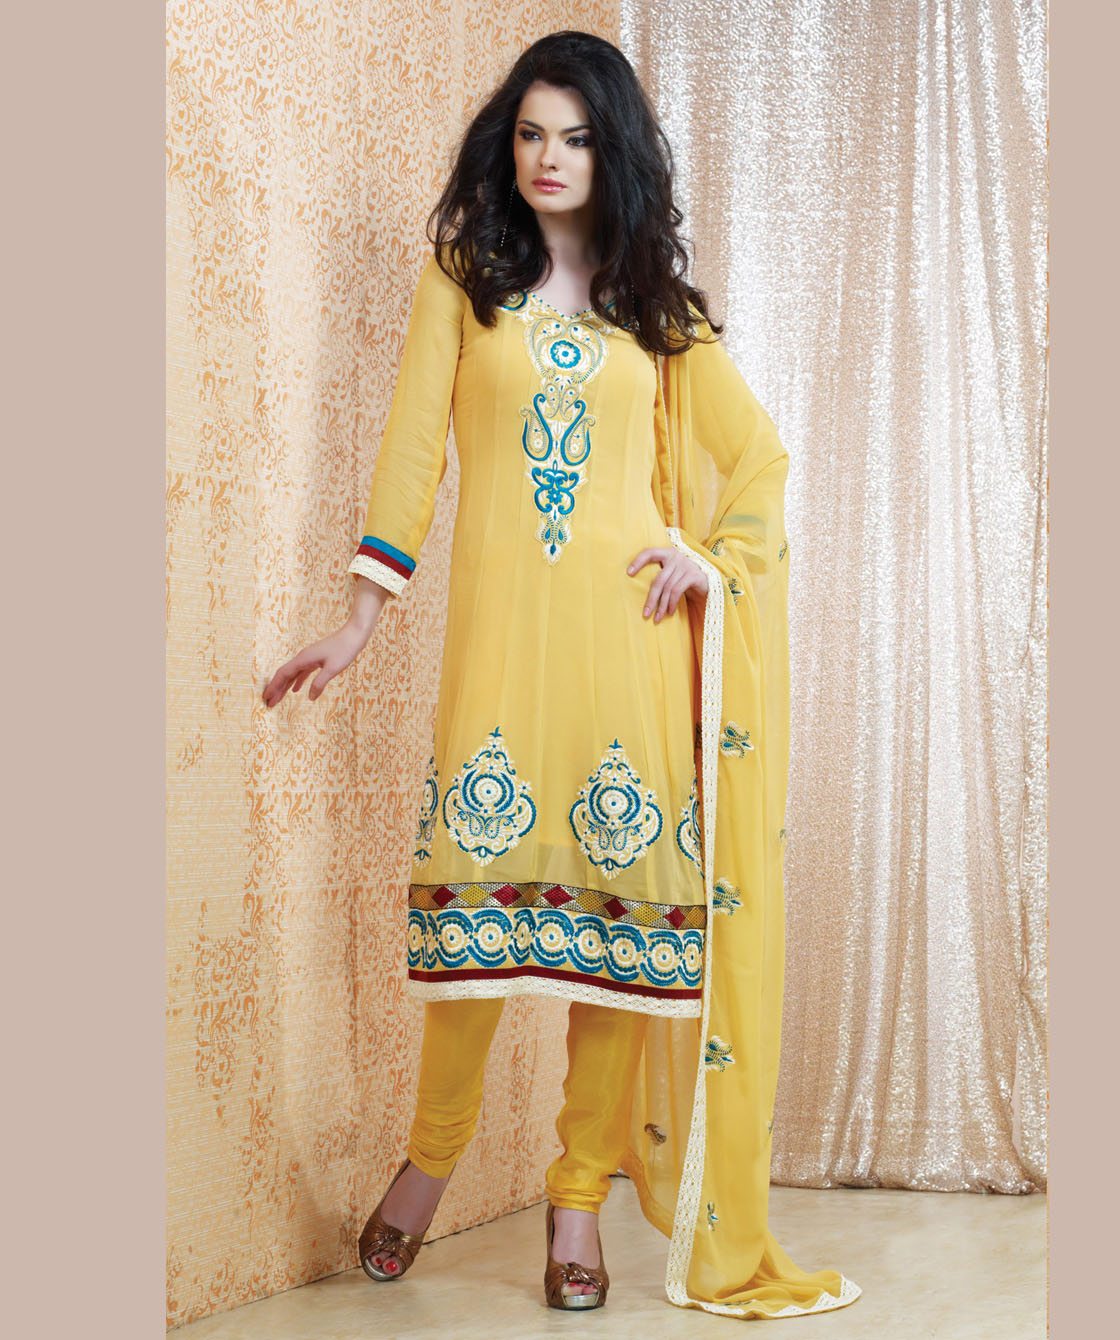 Indian Salwar Kameez Online 2013-2014 | New Party Dresses Fashion